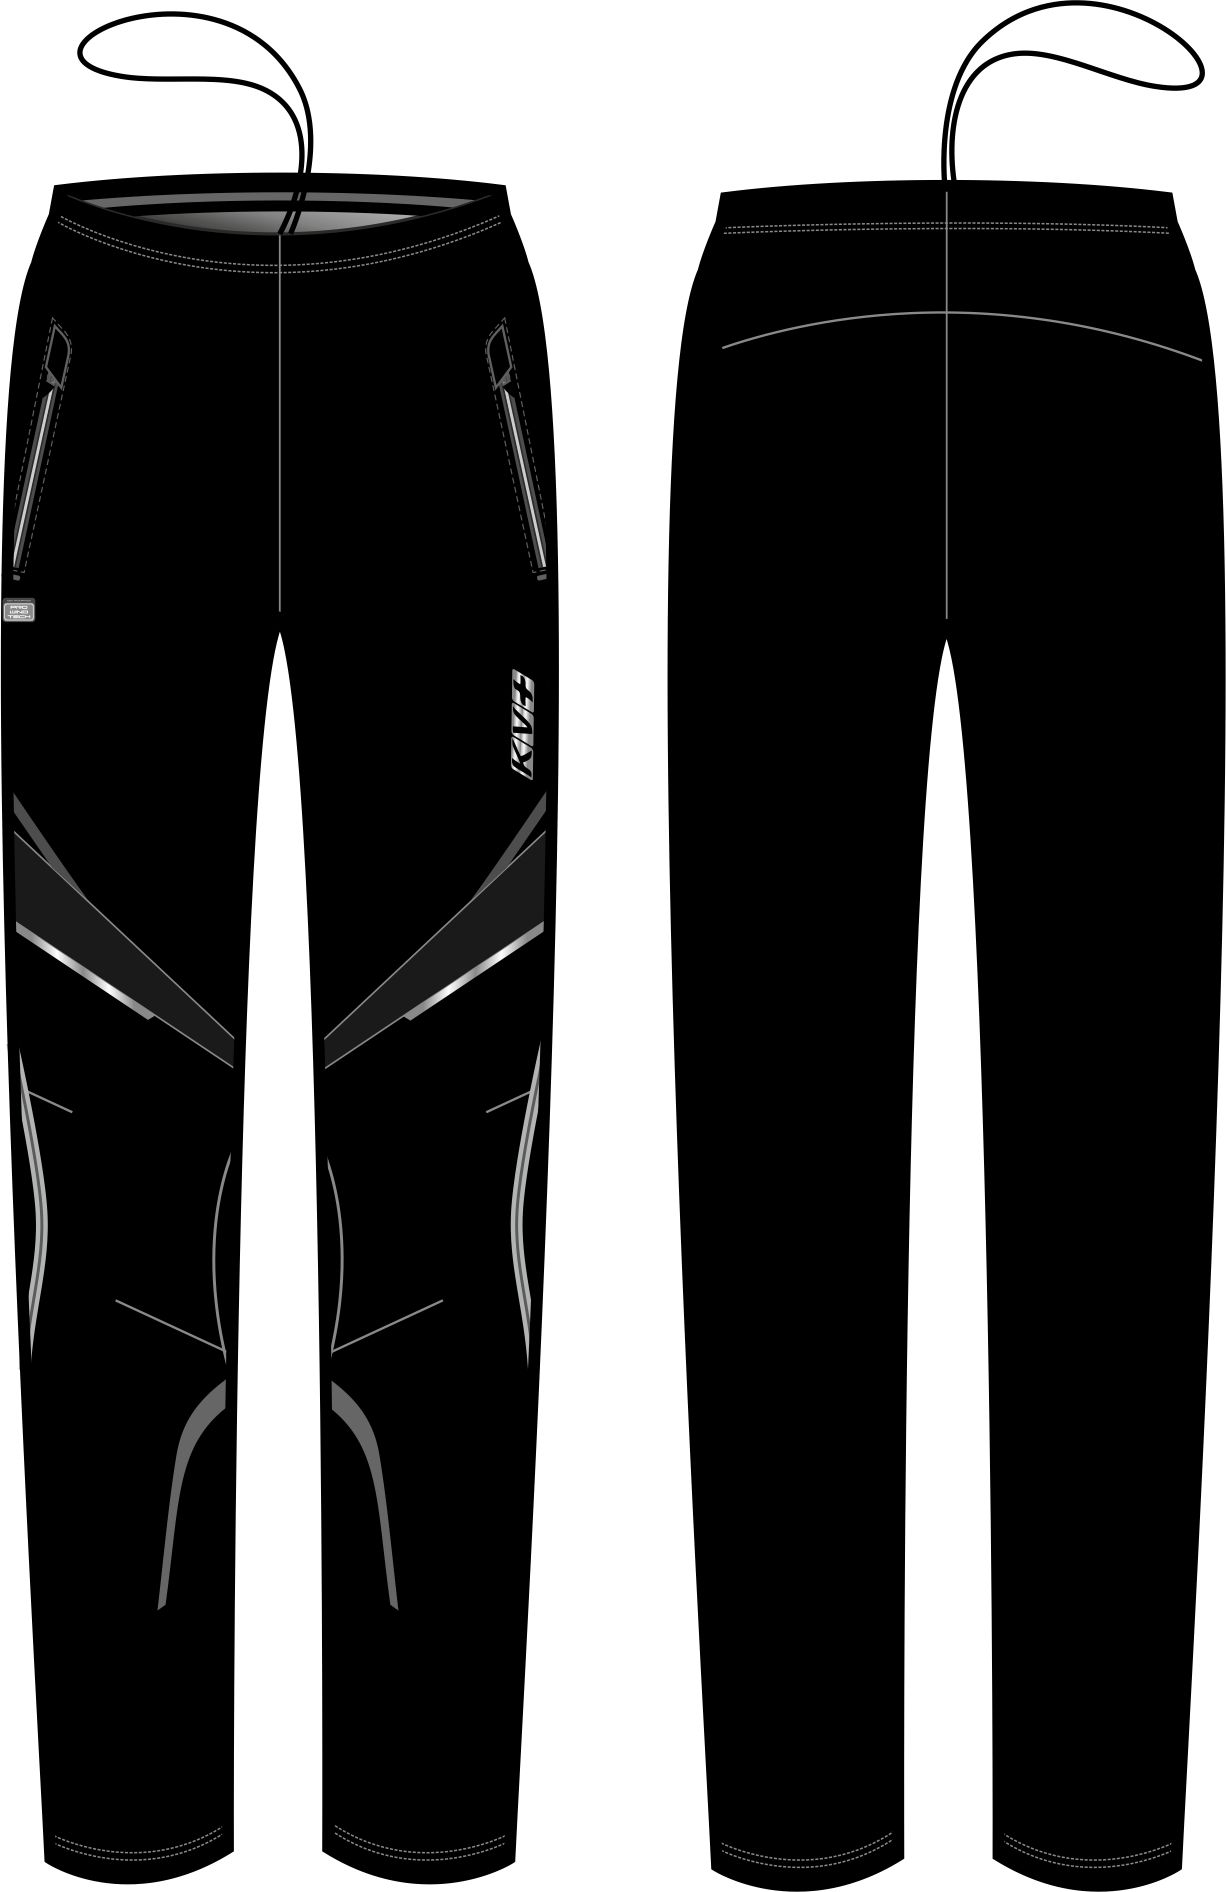 DAVOS PANTS UNISEX full side zip (black)